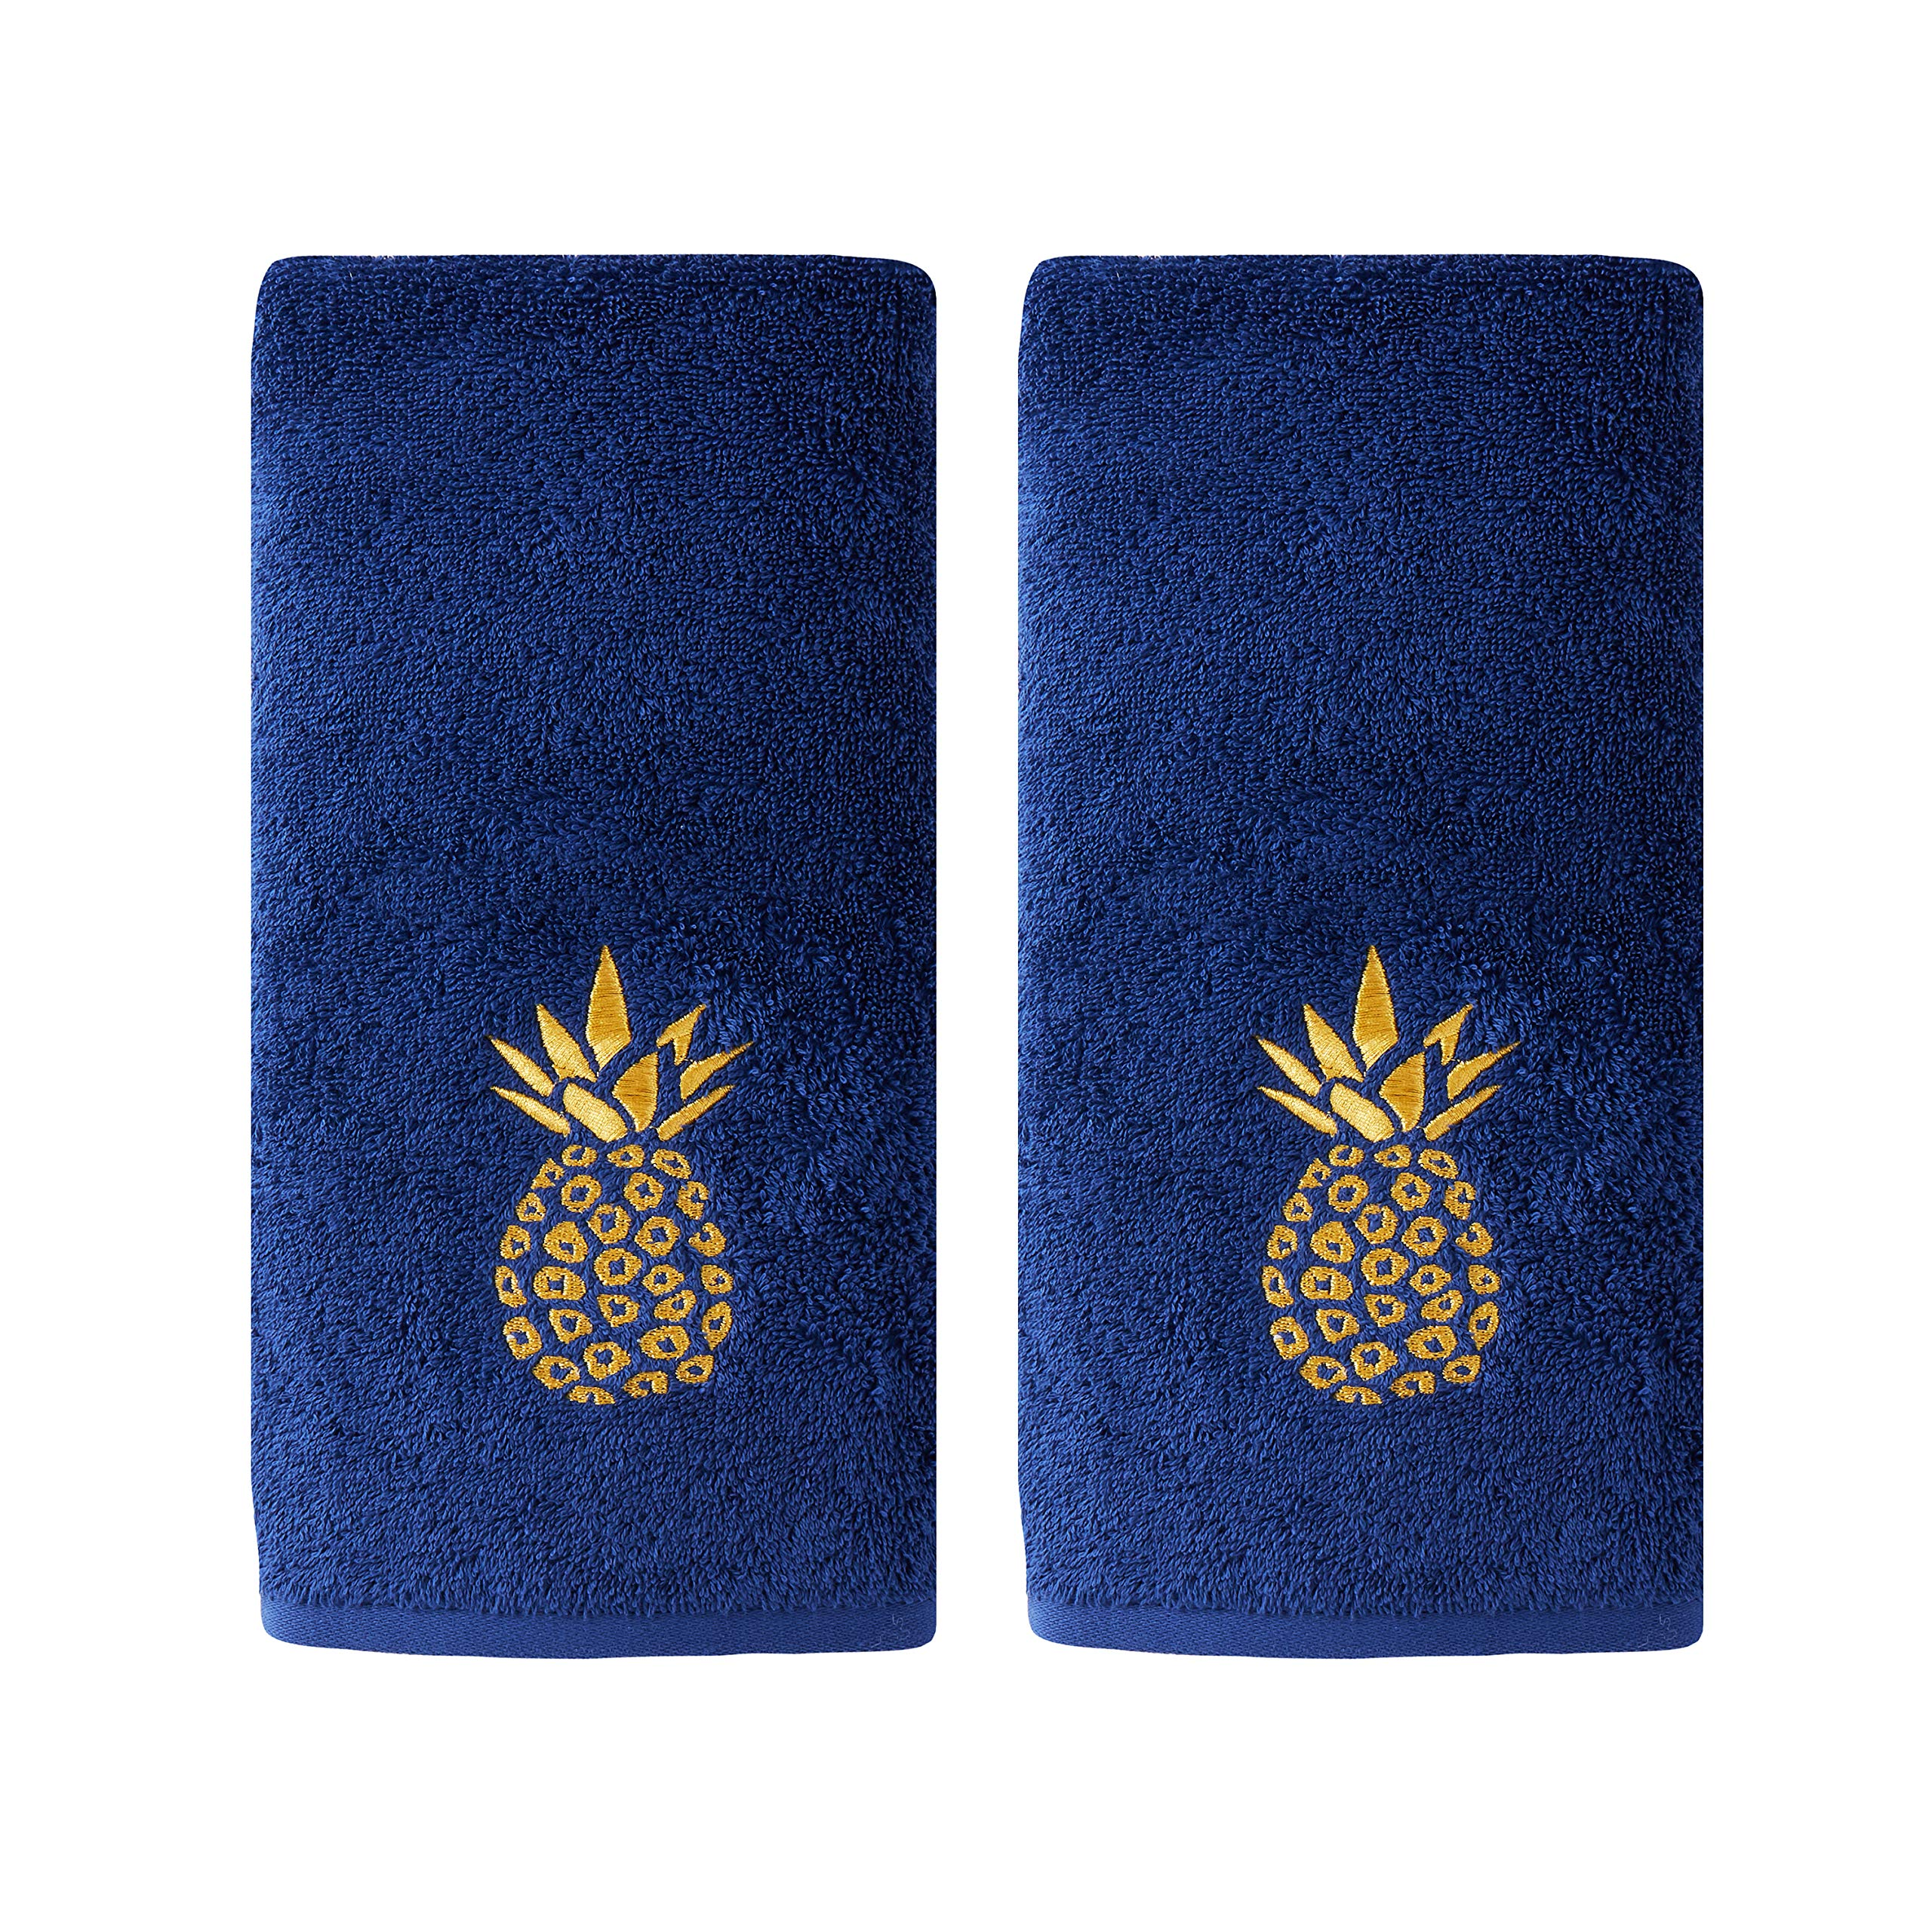 SKL Home by Saturday Knight Ltd. Gilded Pineapple Hand Towel, Navy